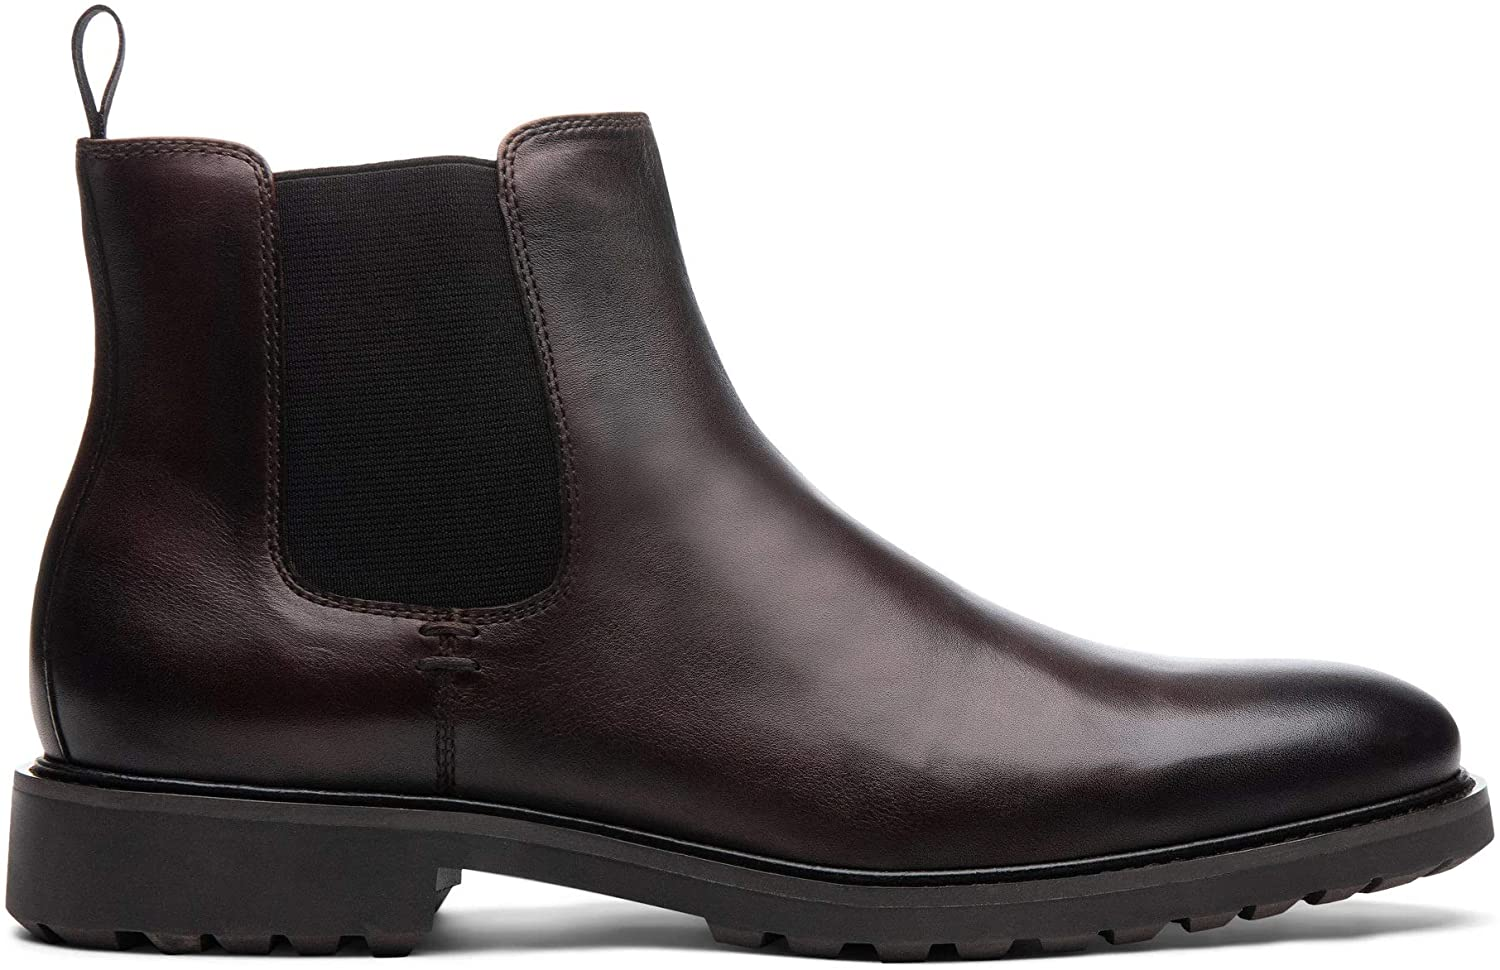 Blake McKay: Keane Men's Dress-Casual Boot Leather Chelsea Boot. Must-Have Bootie with a Breathable Leather Lining, Ortholite Insole, and Durable Non-Slip Rubber Lug Sole for All-Day Comfort.